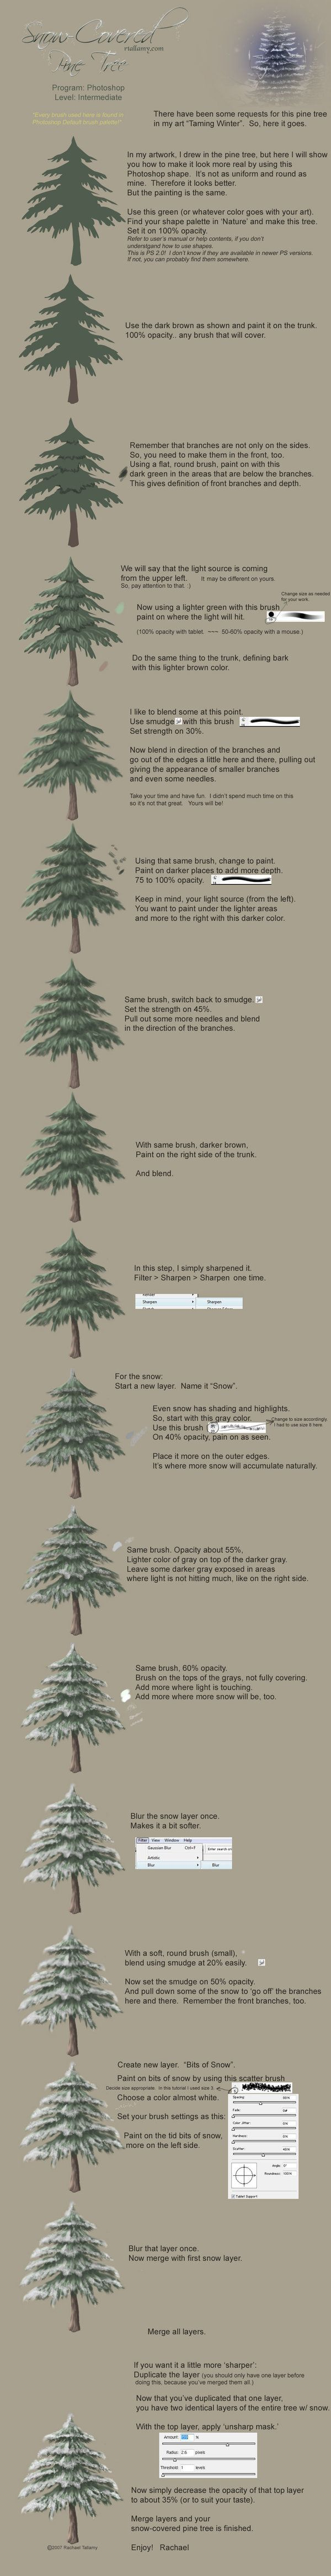 Pine Tree with Snow-Tutorial by Rach-Resources on deviantART